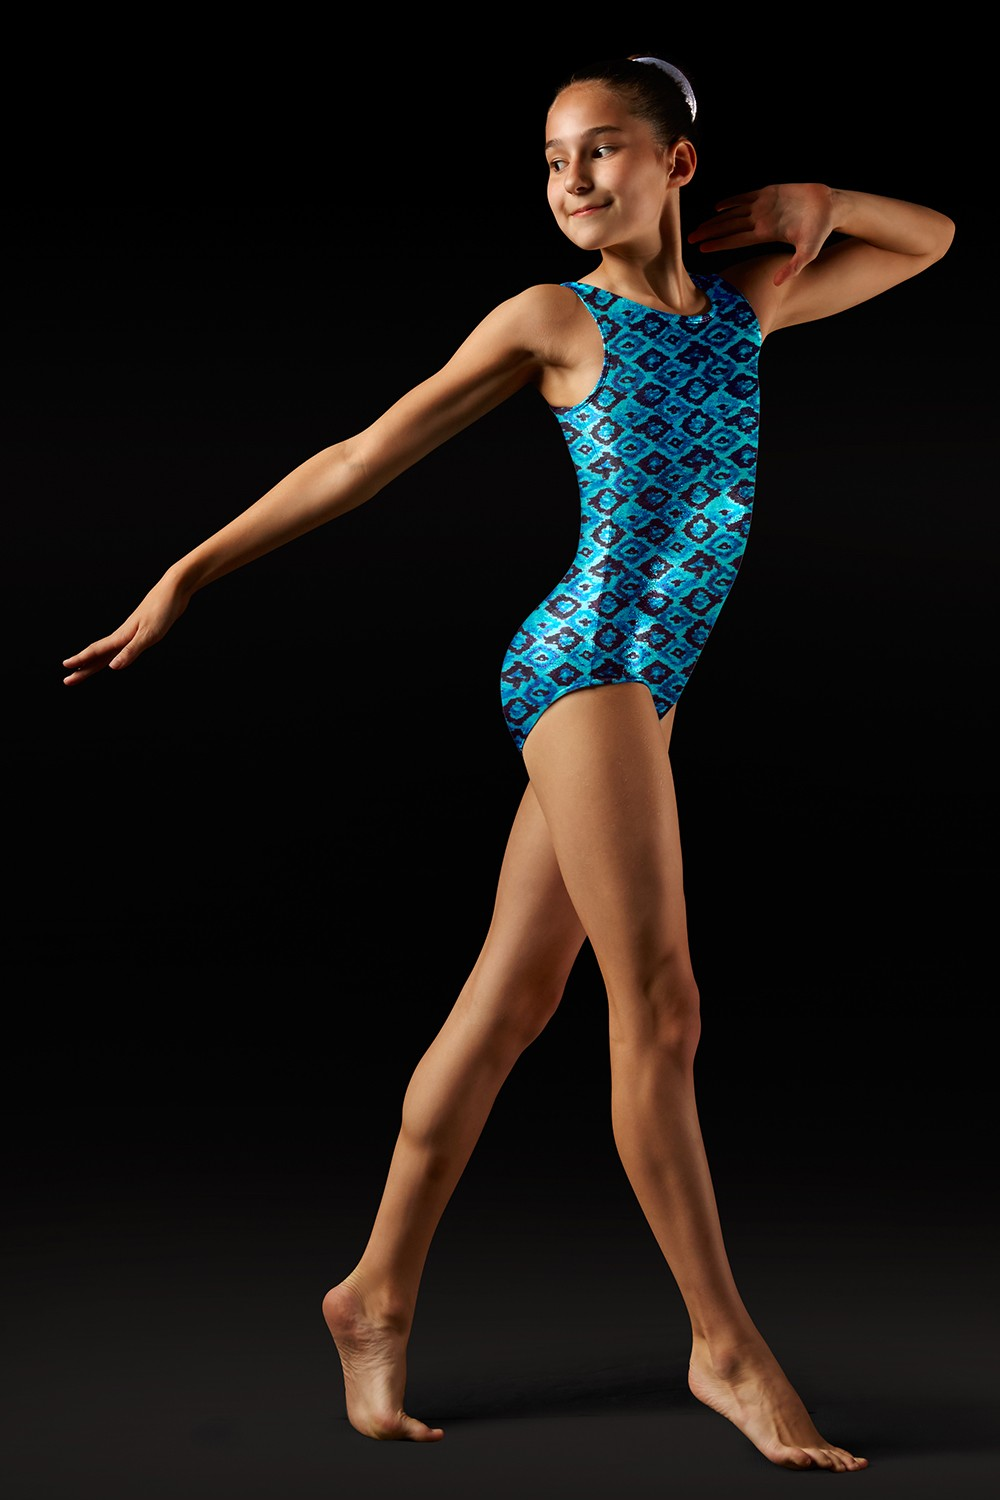 Girl's Gymnastics Leotards